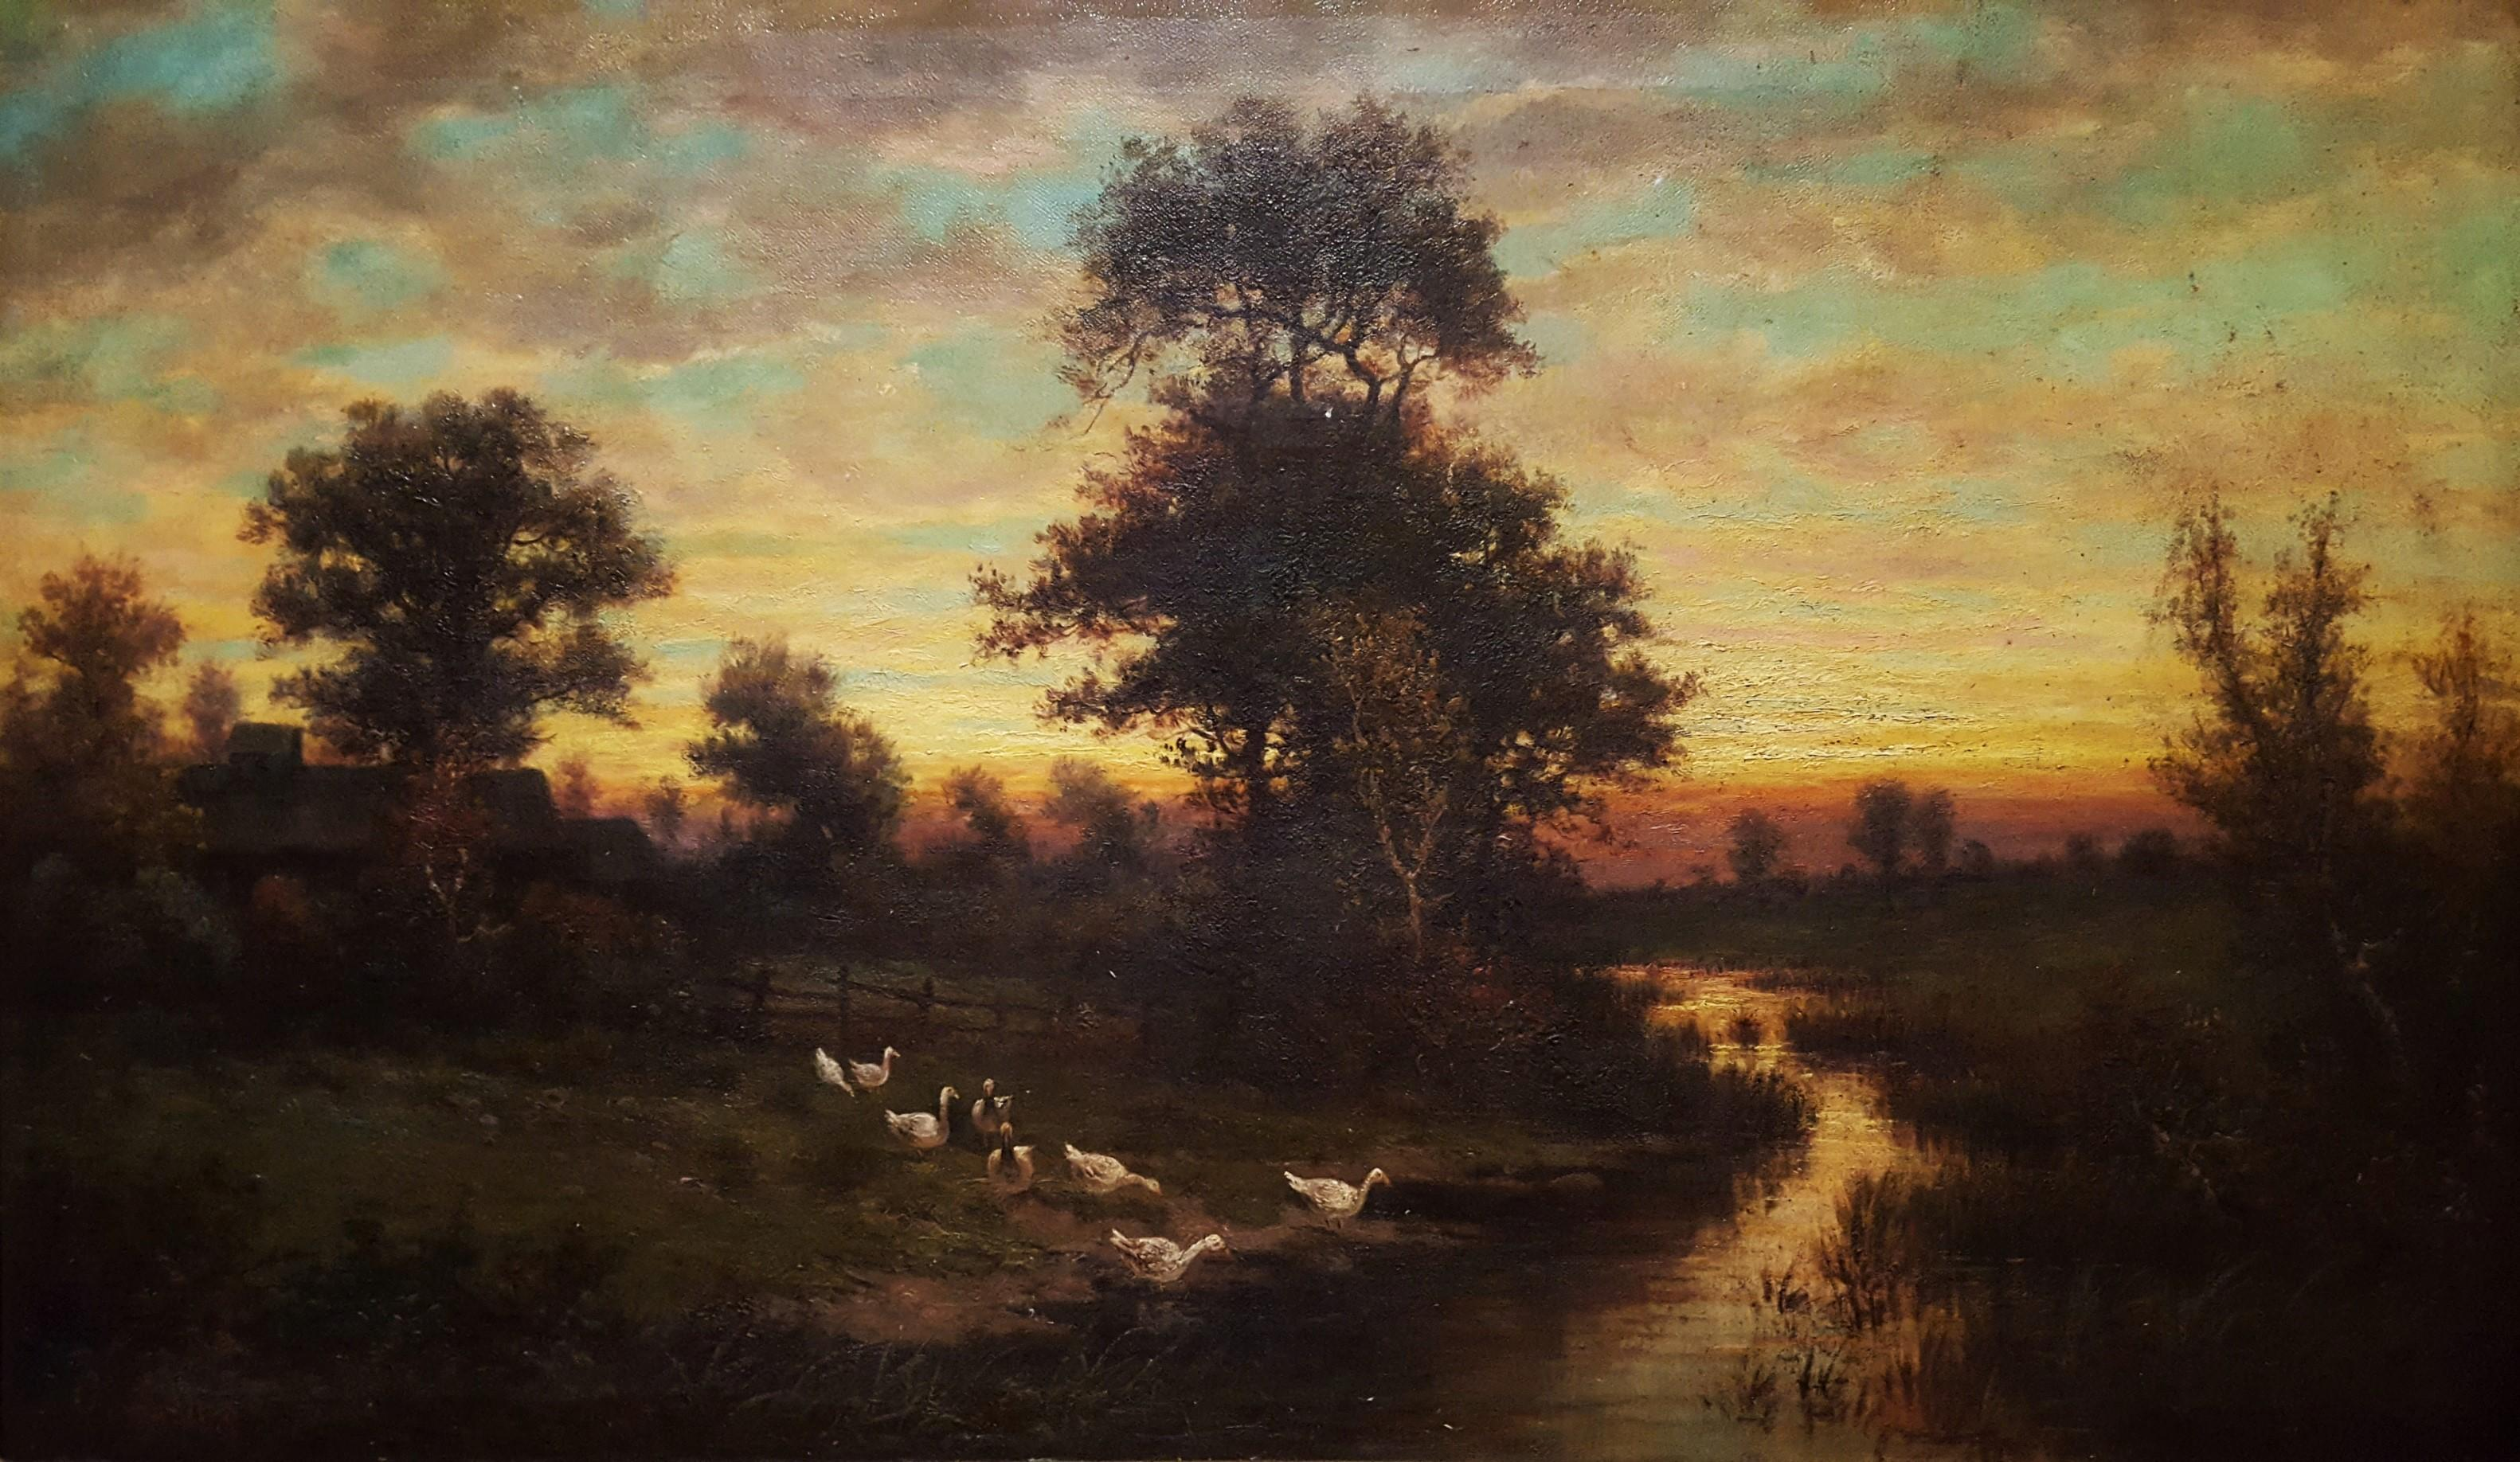 Cottage Landscape with Geese at Twilight